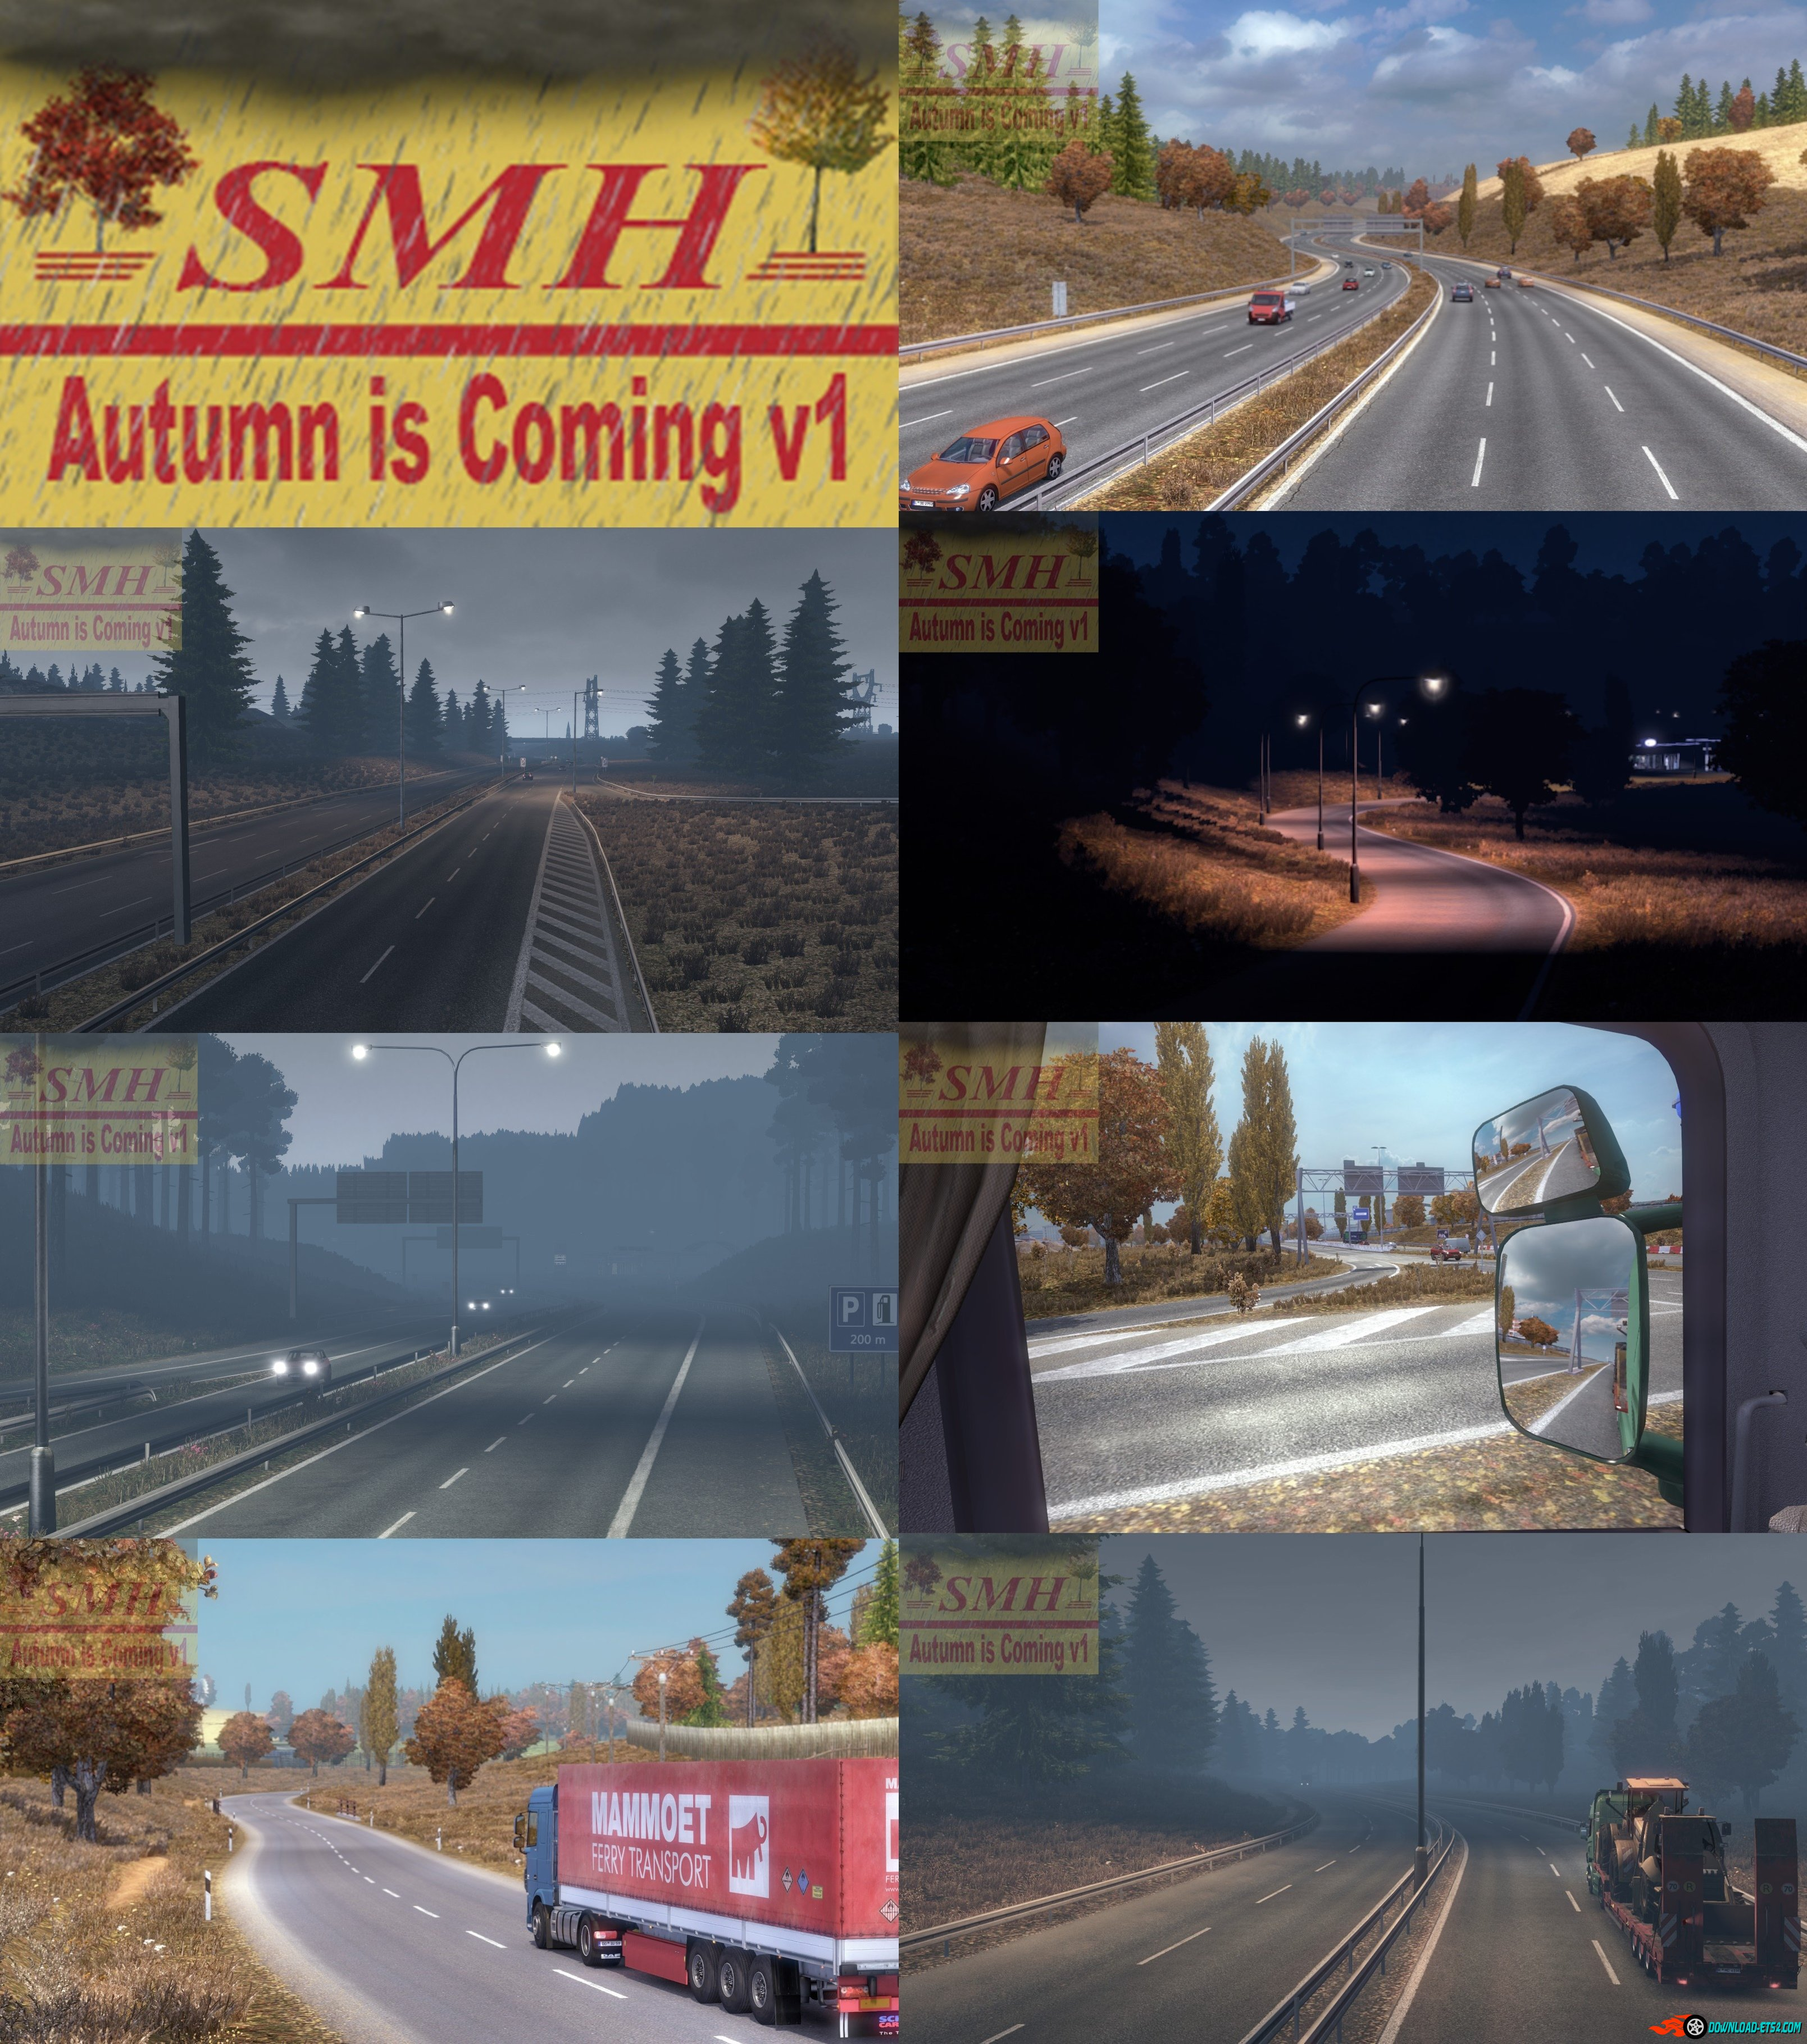 "SmhKzl - "" Autumn is Coming v1 """